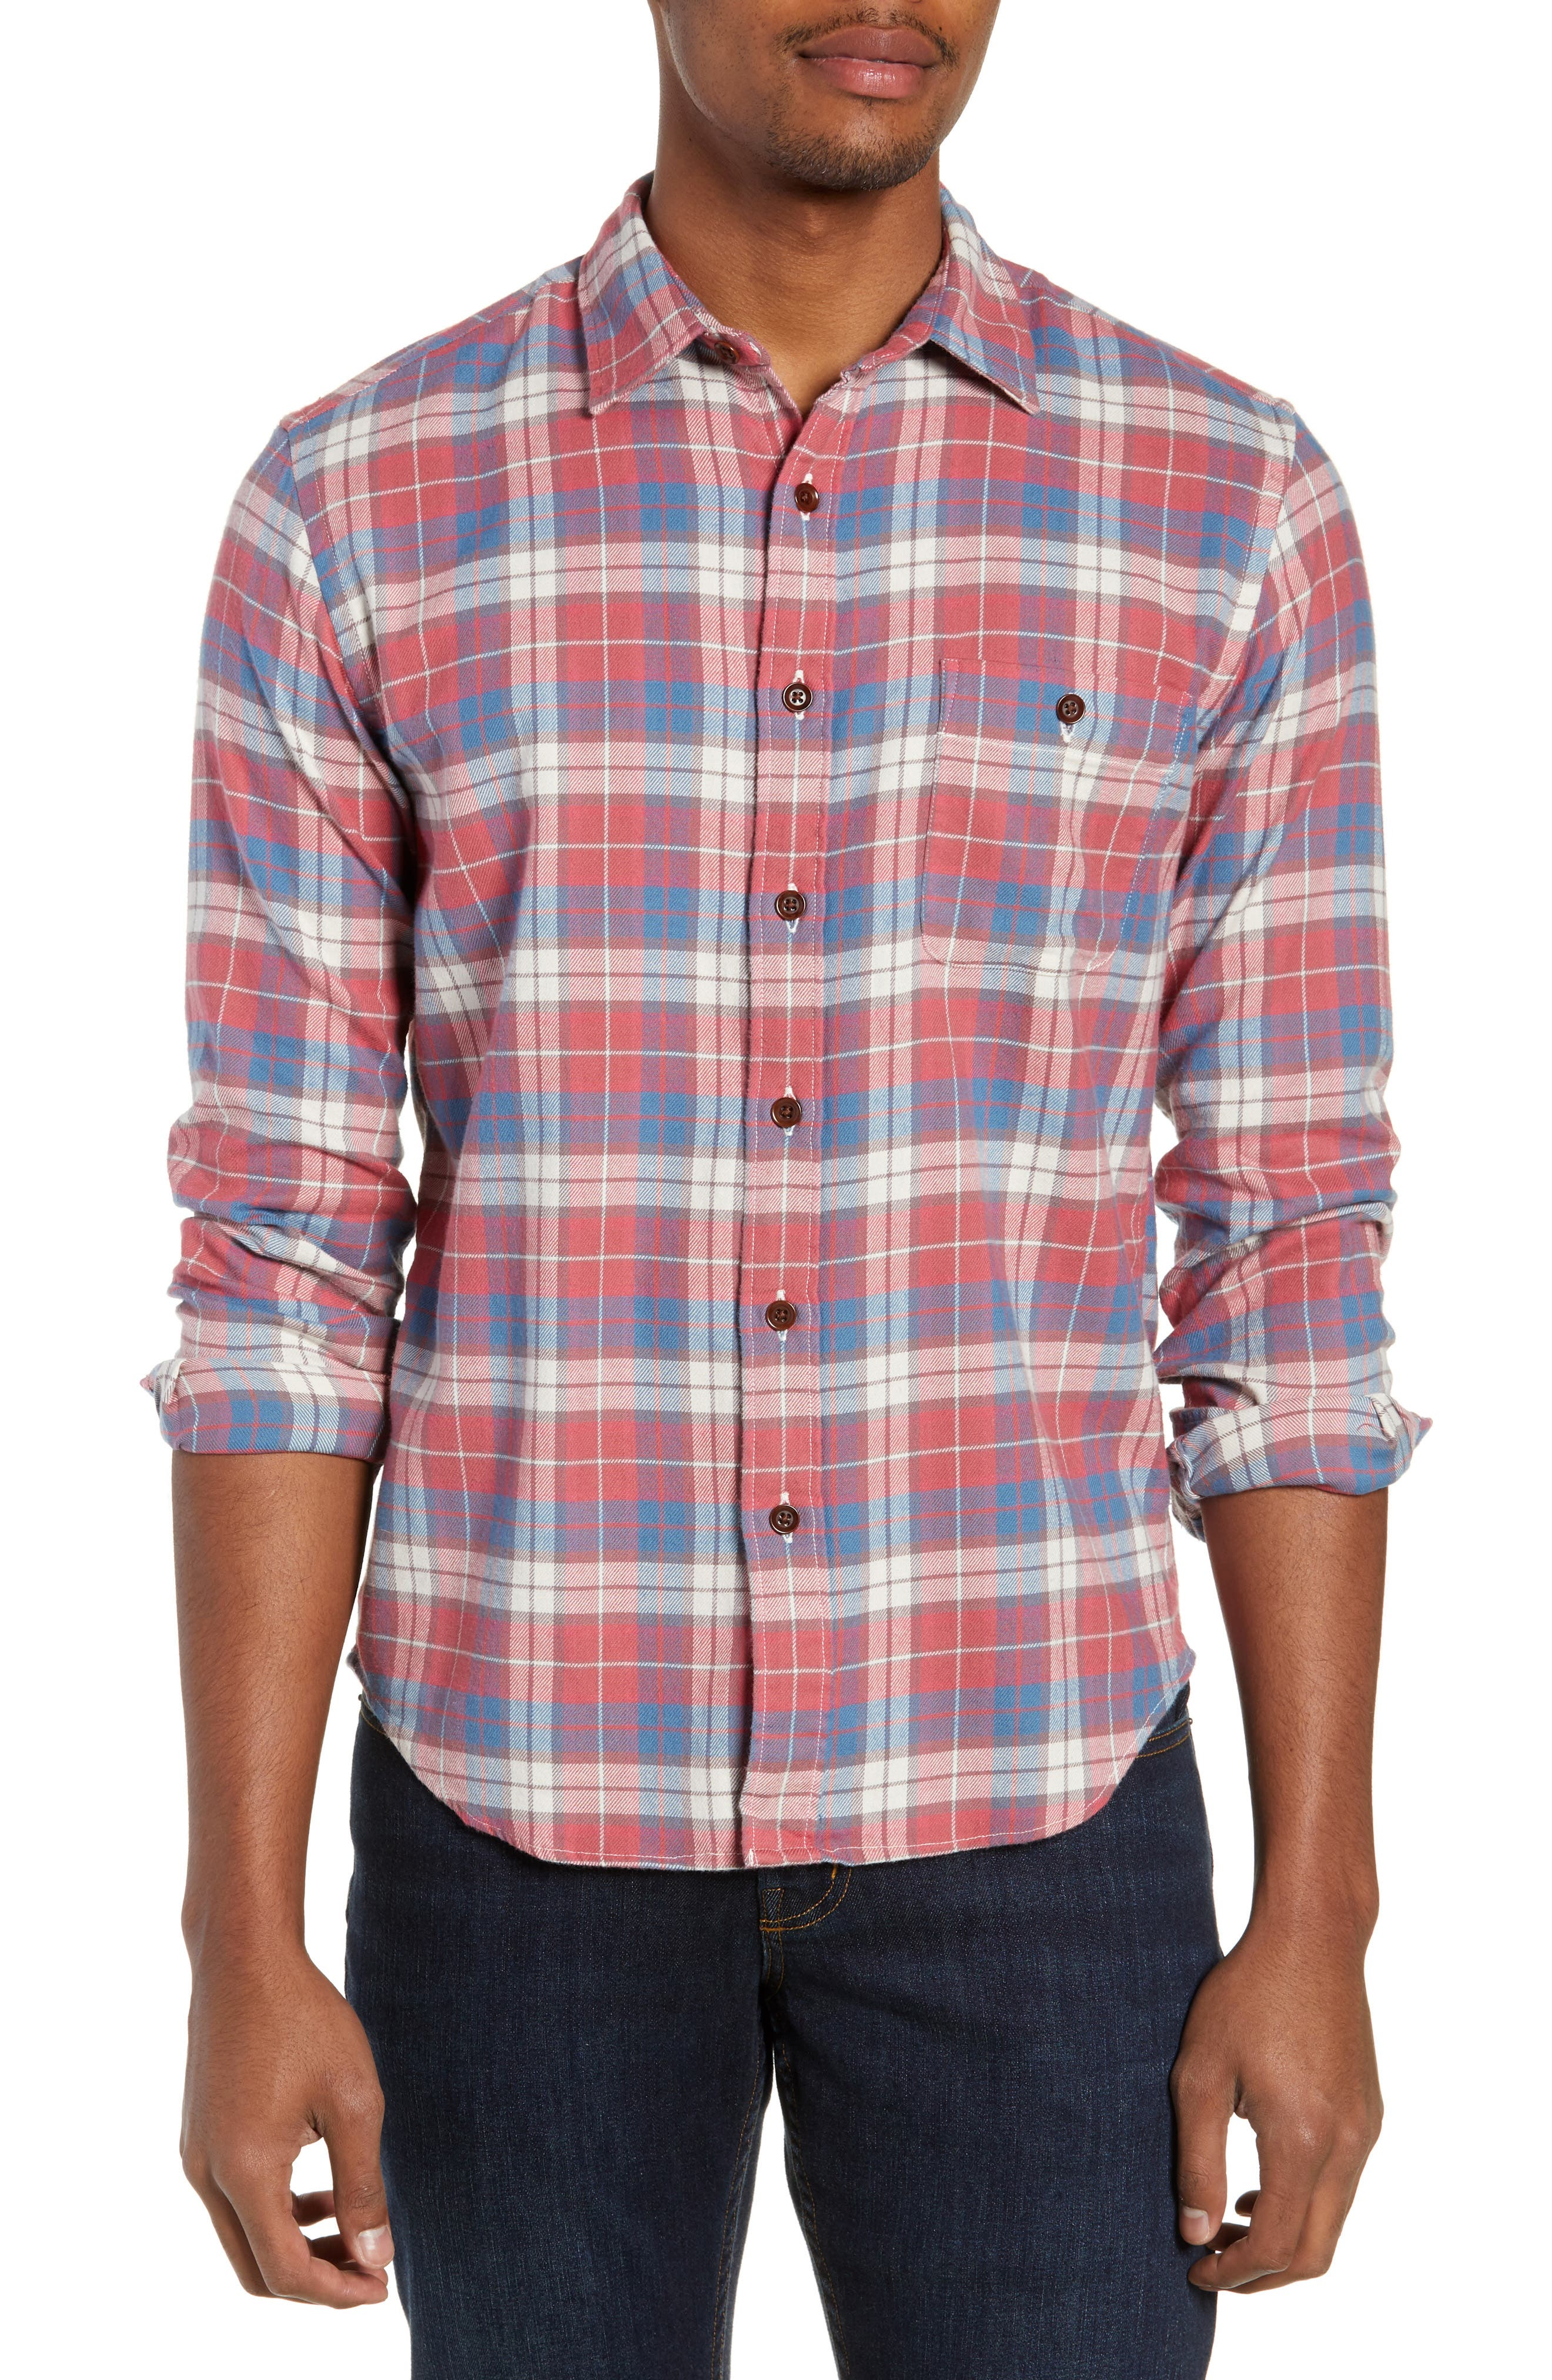 Seaview Stretch Flannel Shirt,                             Main thumbnail 1, color,                             RED HORIZON BLUE